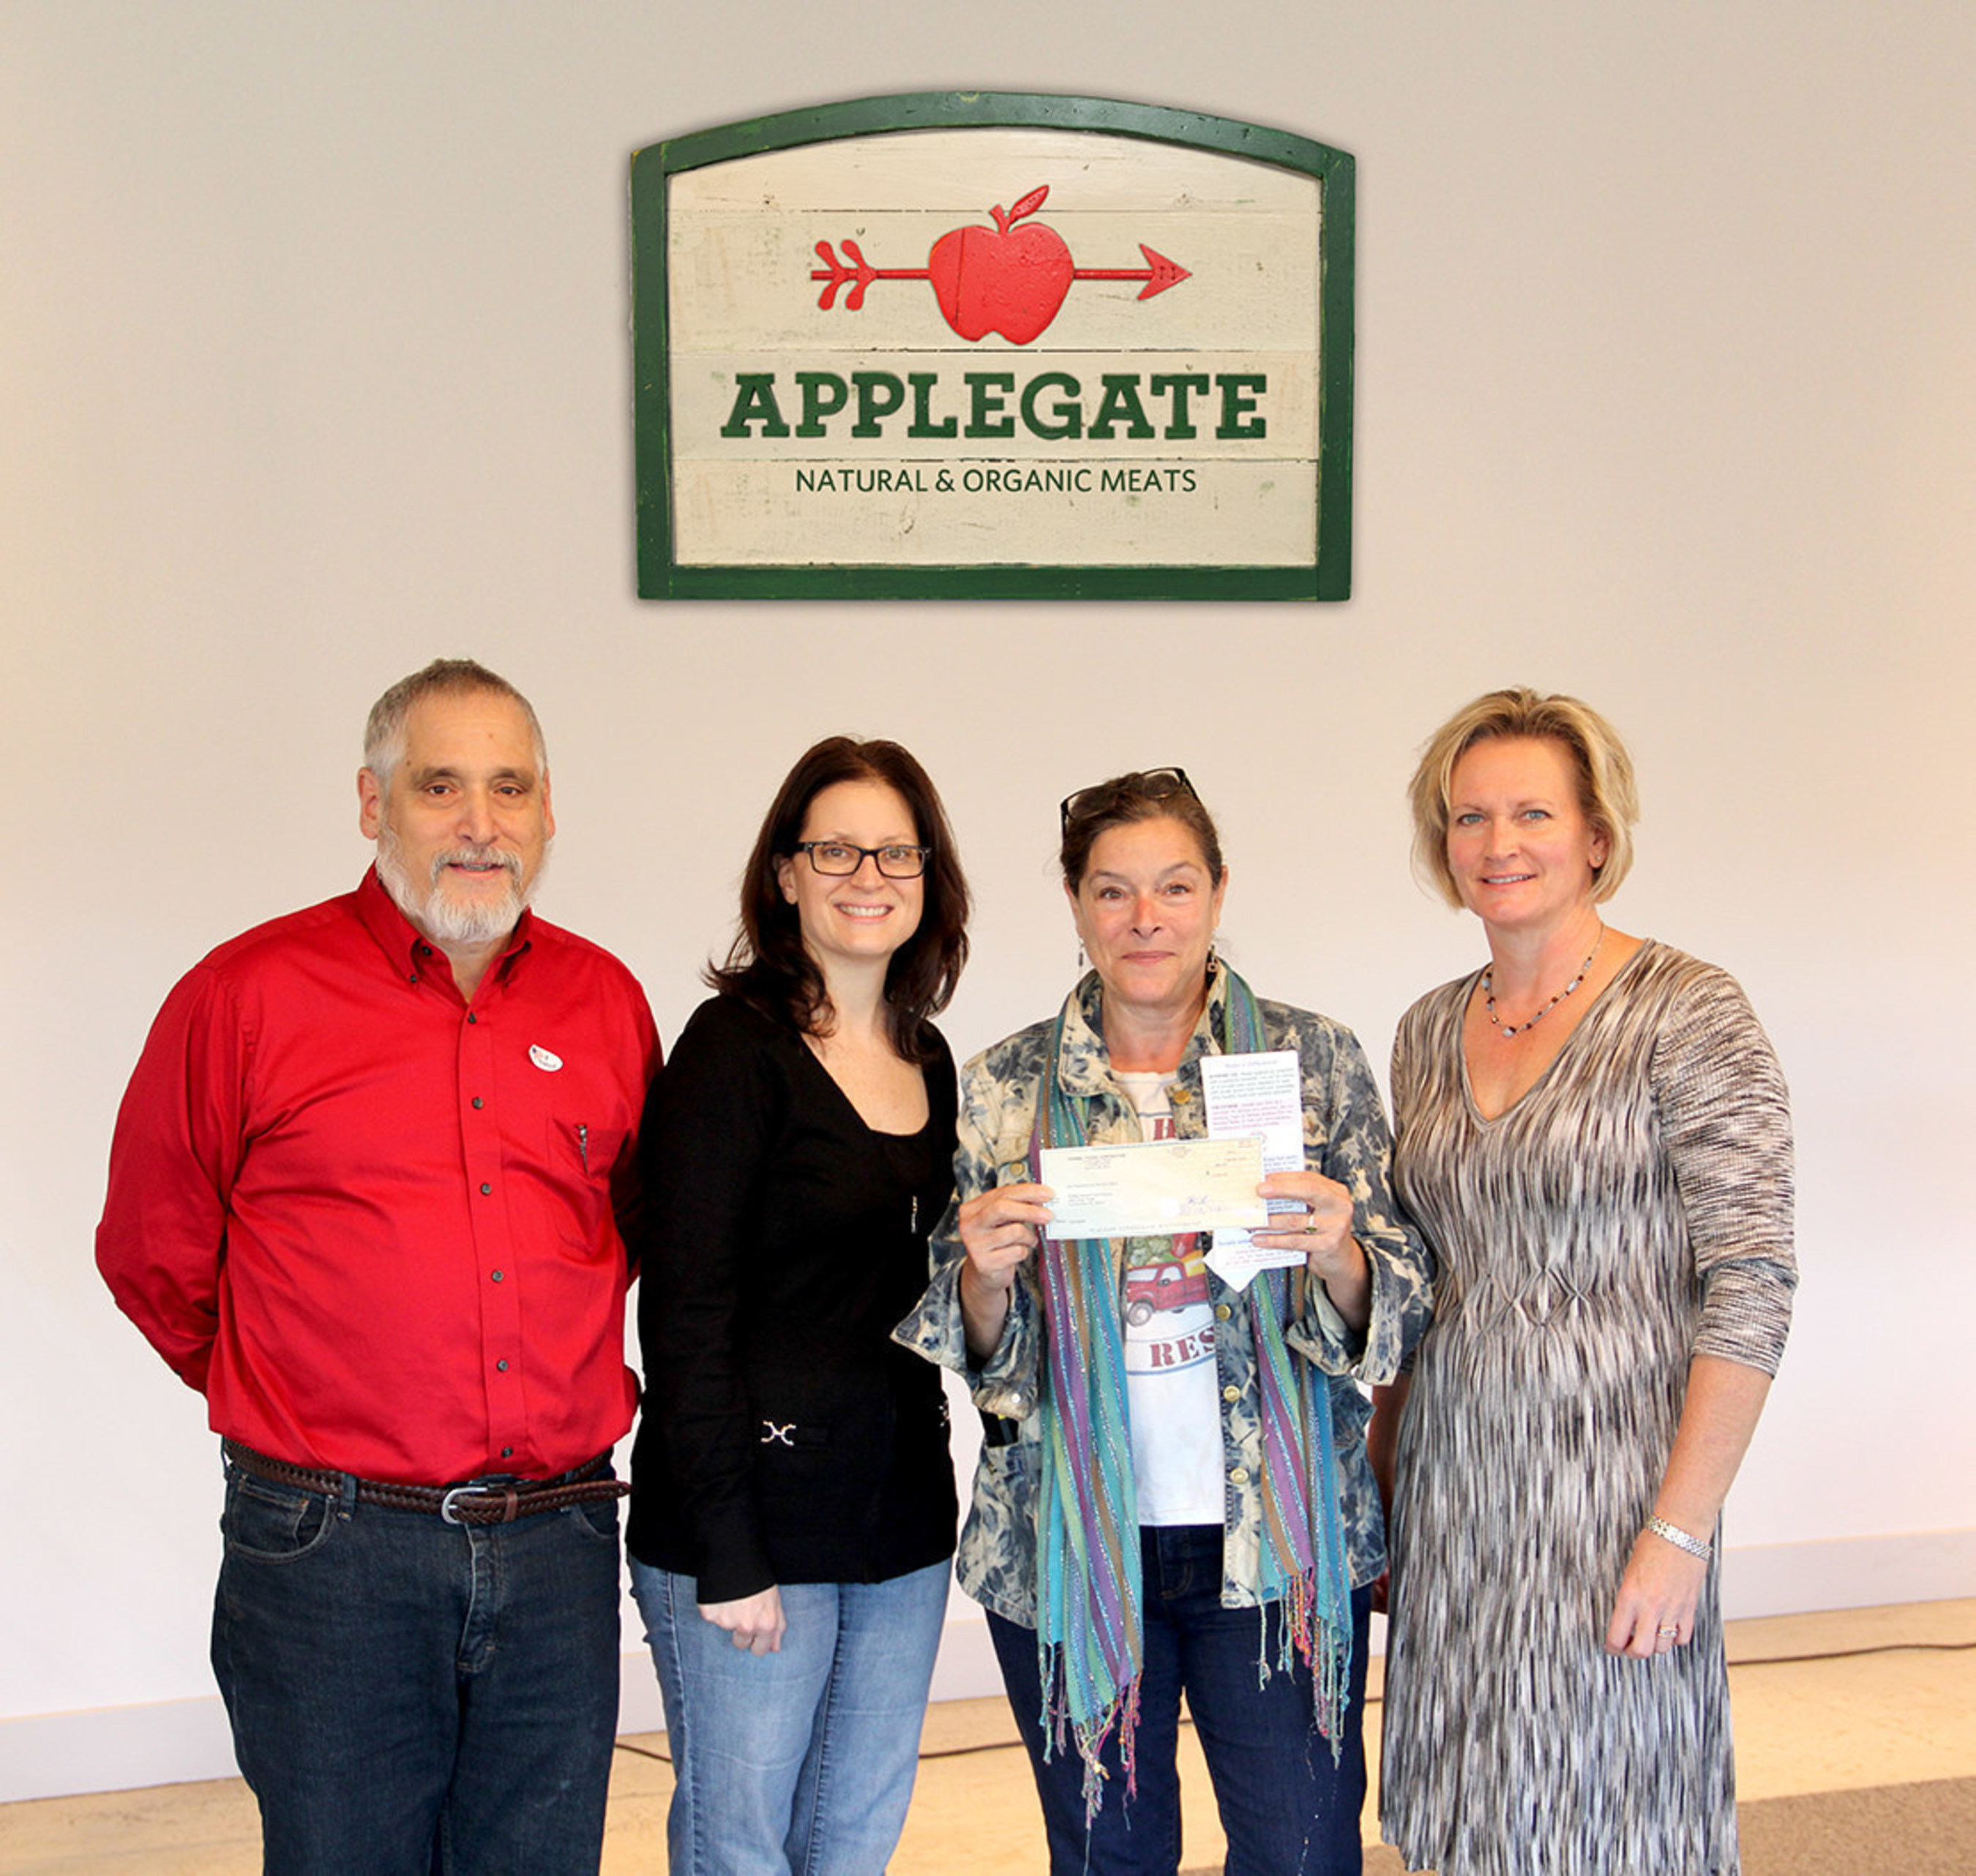 Applegate presents $10,000 donation to Rolling Harvest Food Rescue - Bob Amarant, Applegate Director of Traffic and Logistics, Leah Pires, Applegate Vice President of Human Resources, Cathy Snyder, Rolling Harvest Food Rescue Founder and Executive Director, and Jamie McKnight, Rolling Harvest Food Rescue Program and Development Director.